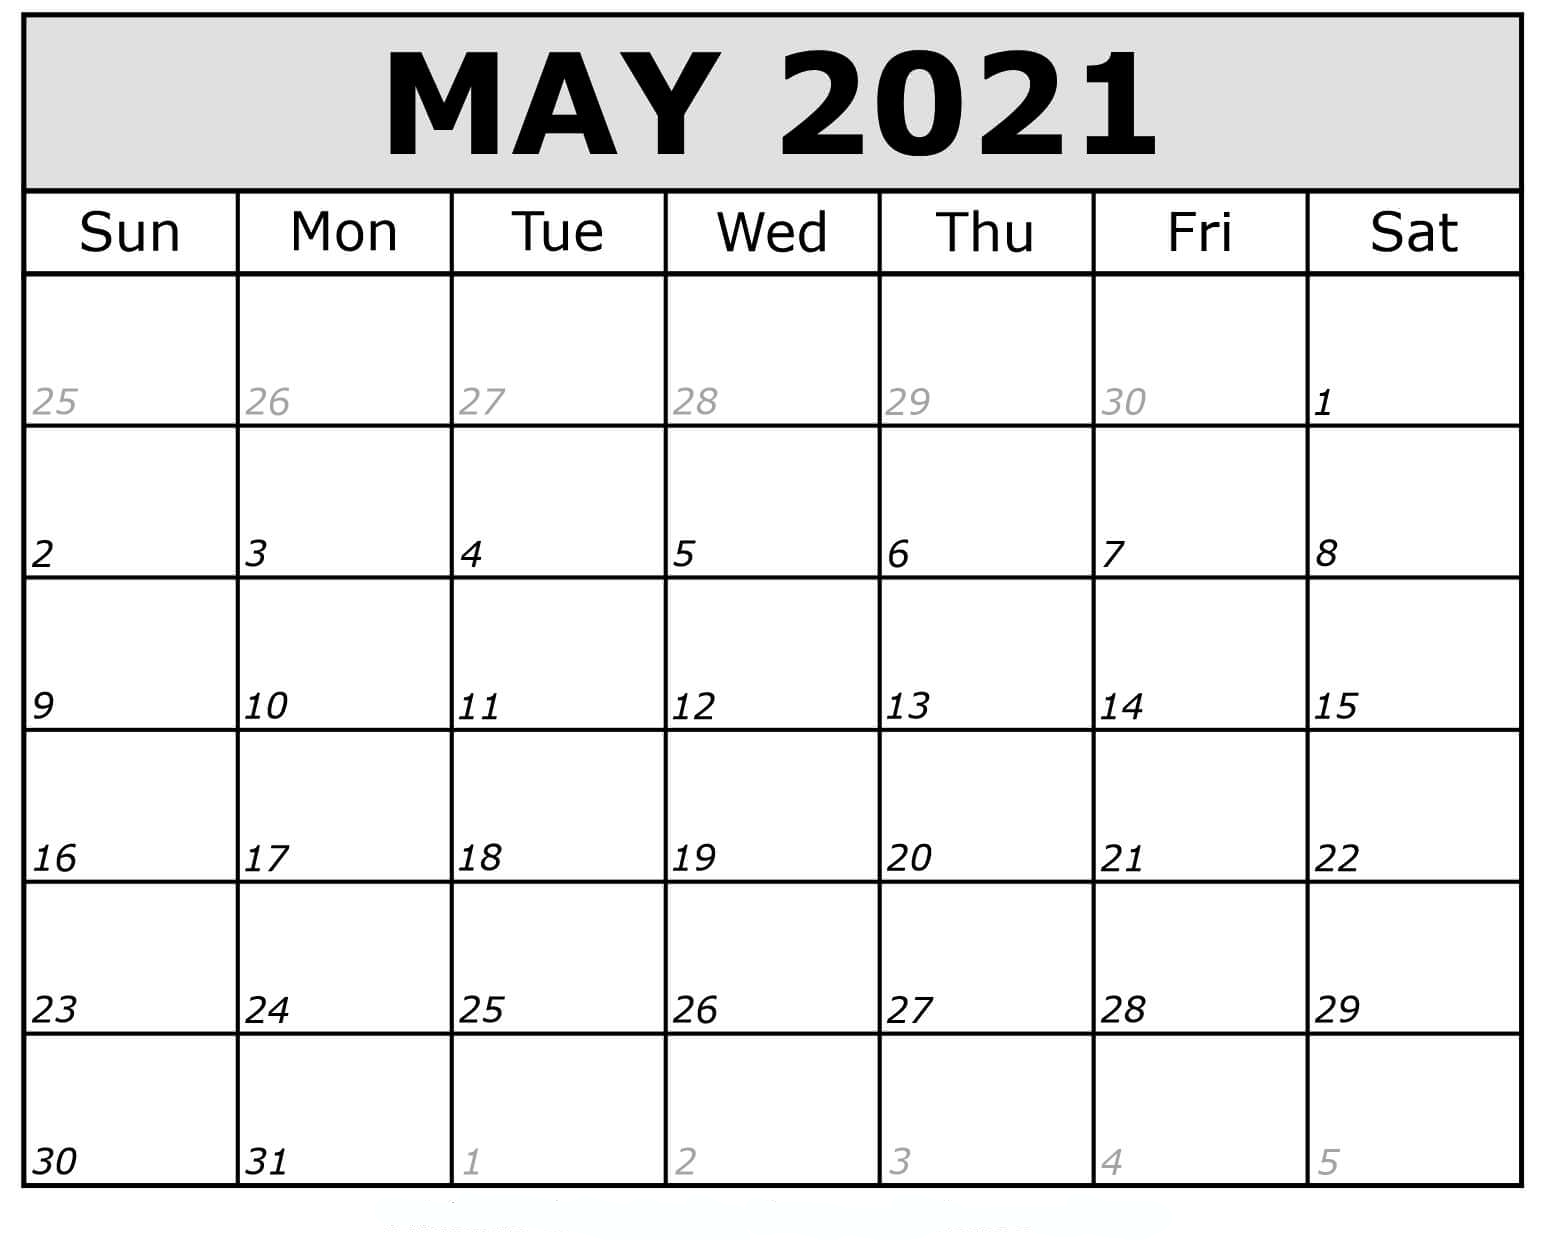 May 2021 Calendar With Holidays Thecalendarpedia